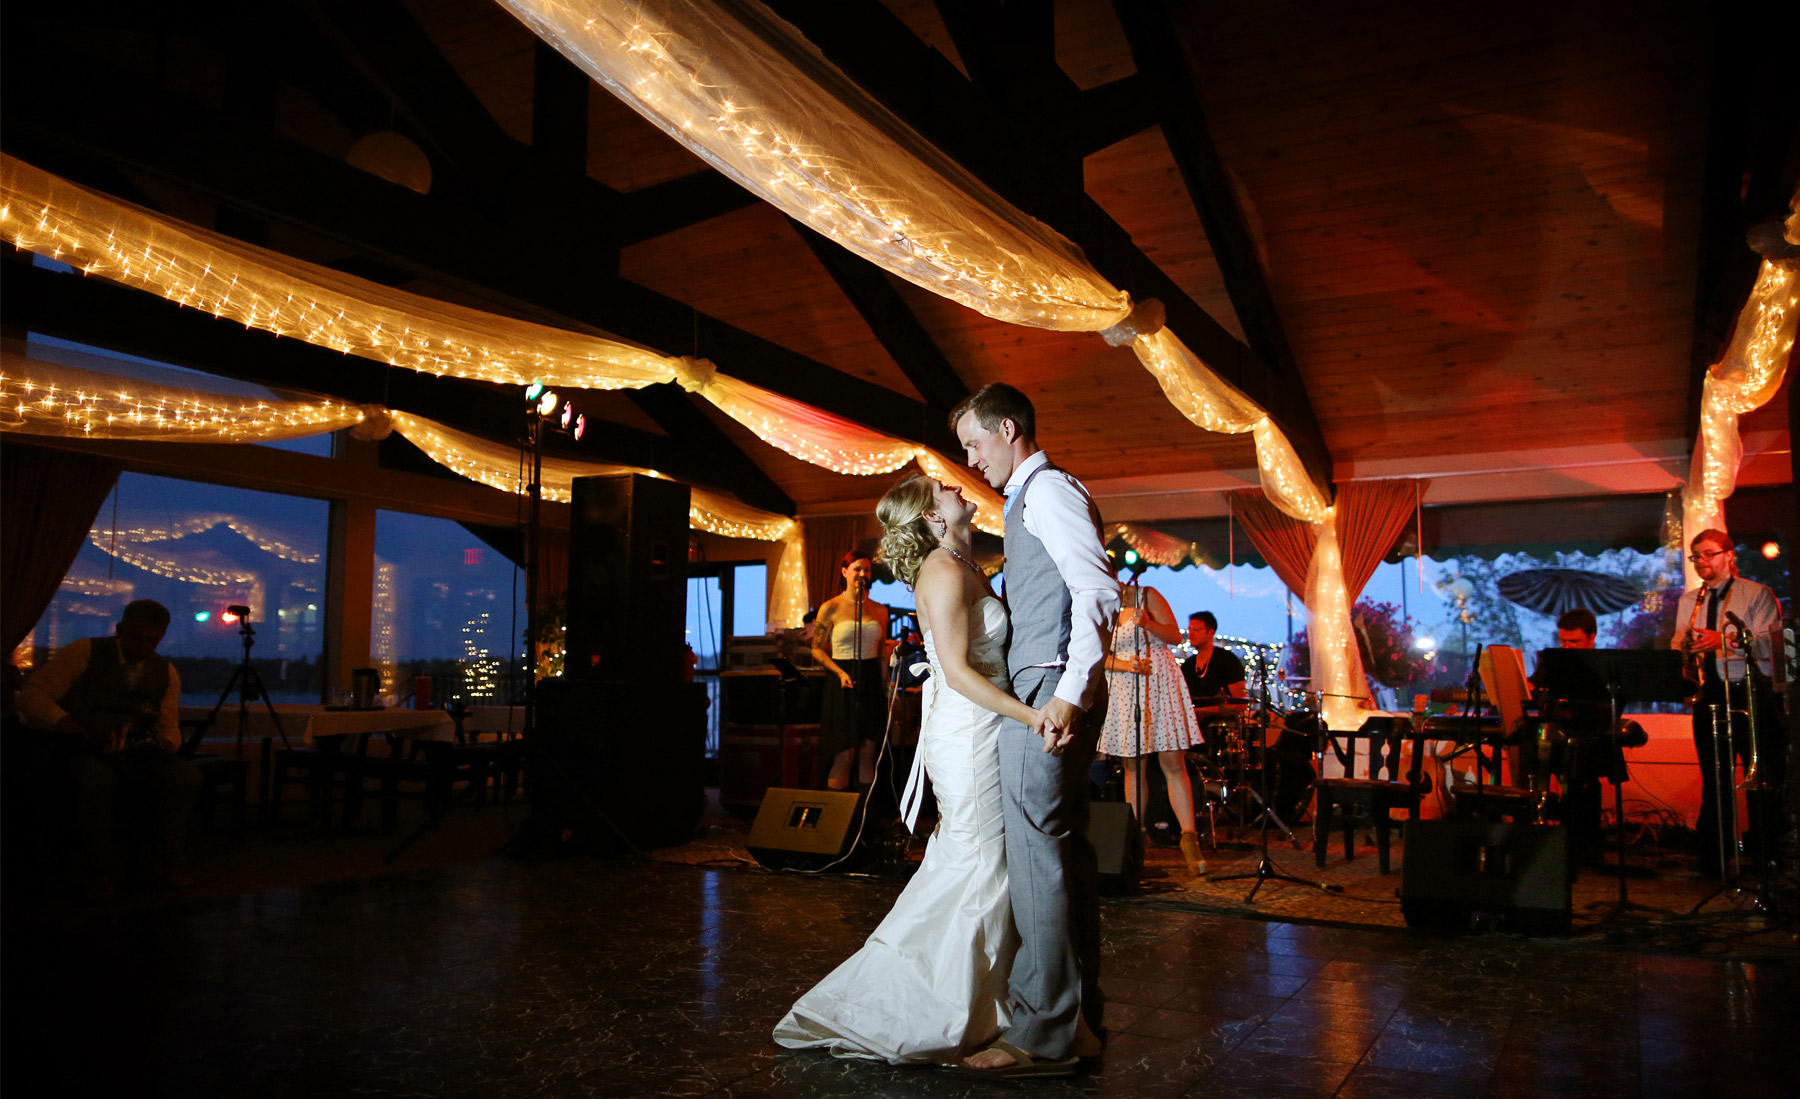 21-Brainerd-Minnesota-Wedding-Photography-by-Vick-Photography-Craguns-Resort-Reception-Lucy-&-Matt.jpg